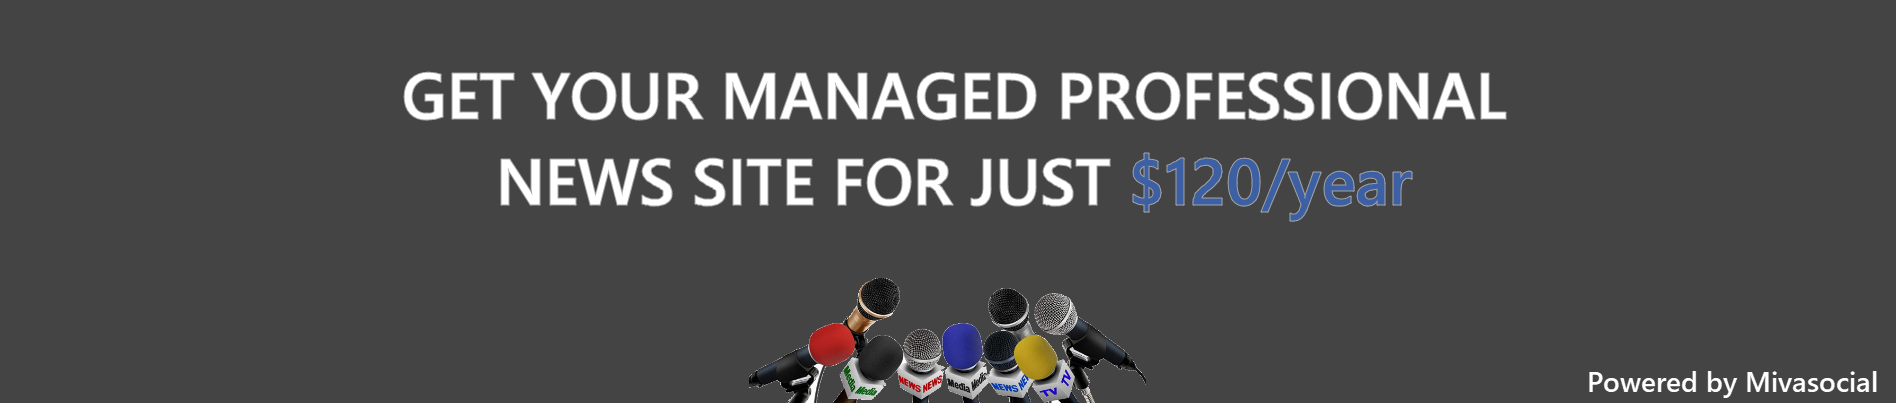 GET YOUR MANAGED PROFESSIONAL NEWS WEBSITE SITE FOR JUST $120/year